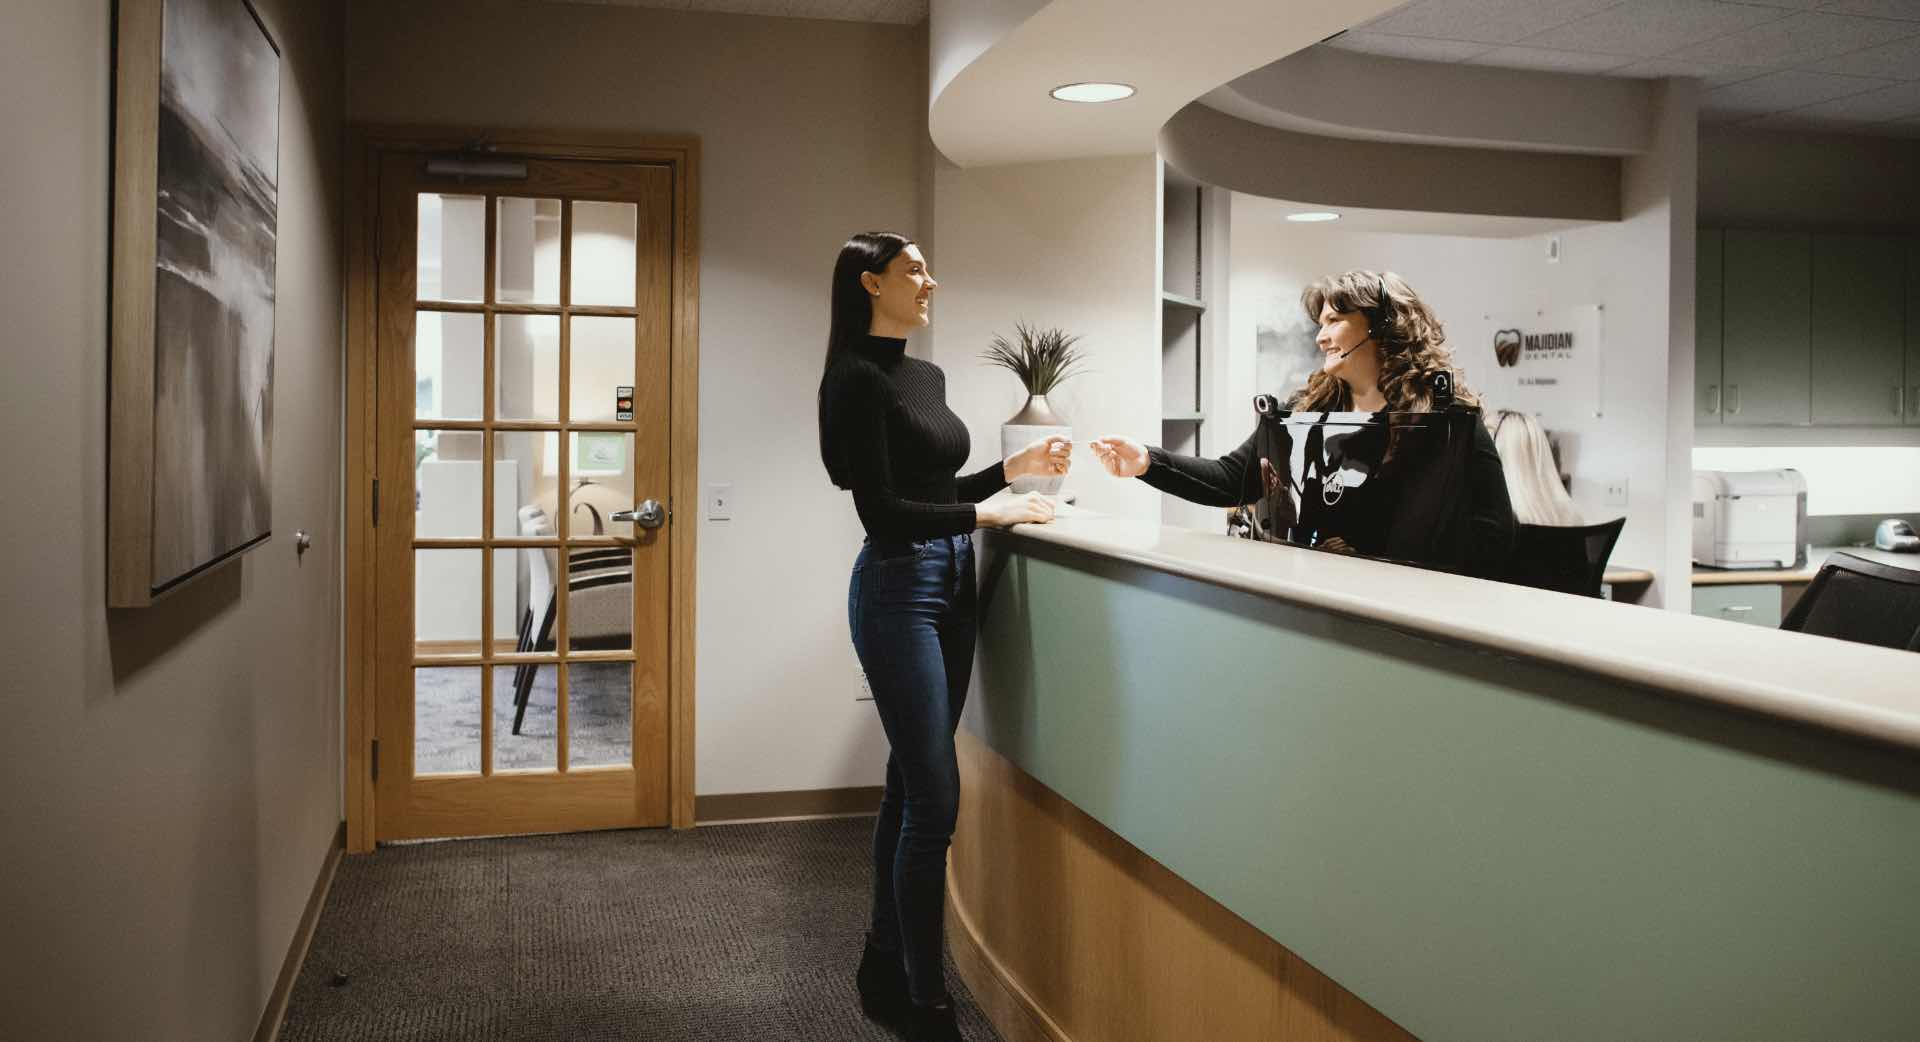 Photo of a Majidian team member assisting a patient at the front desk